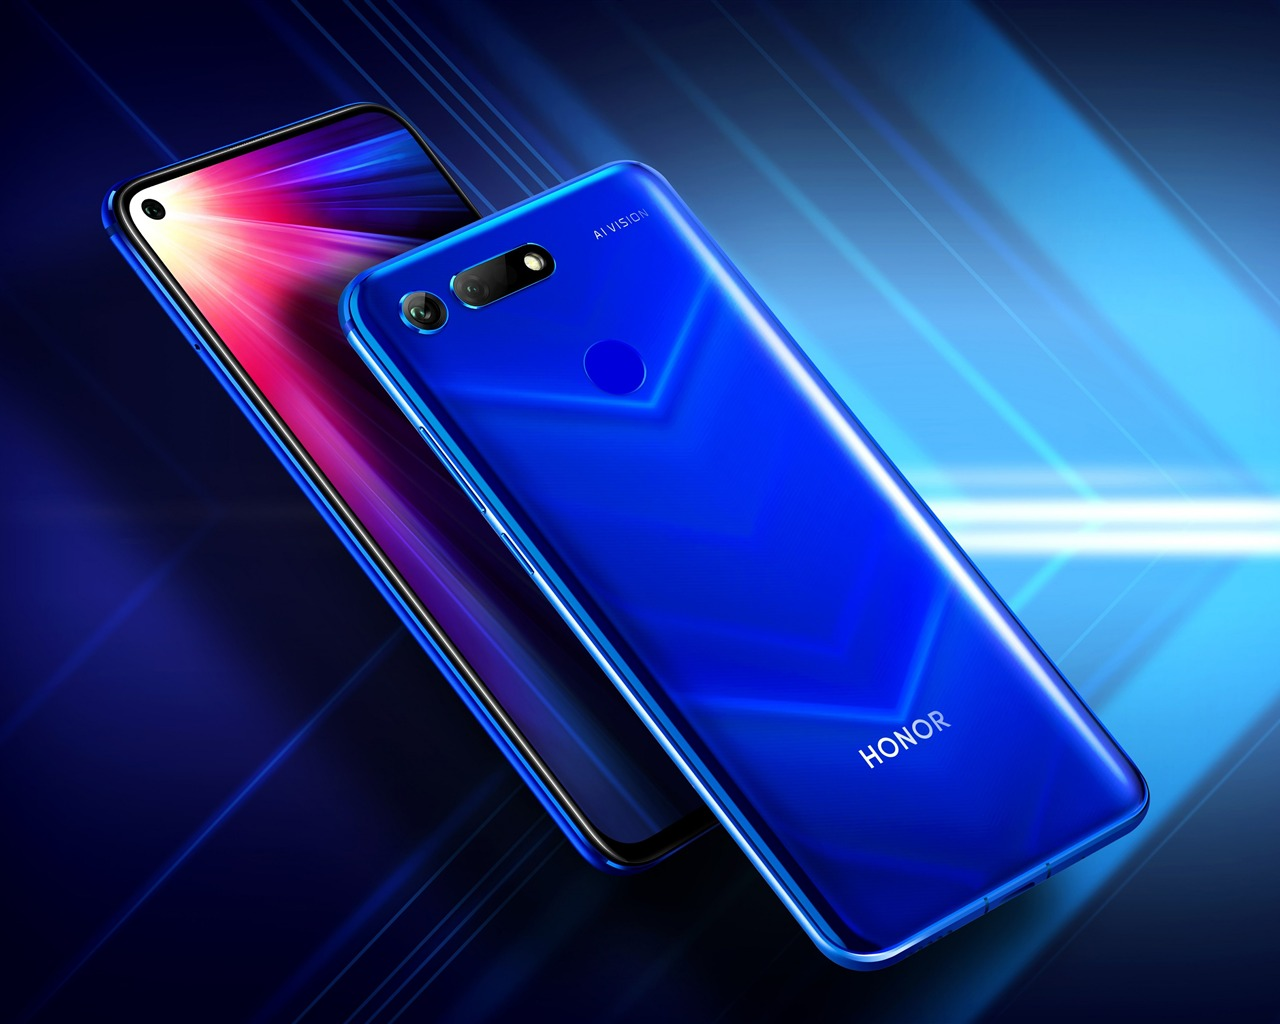 2019 Huawei Honor 20 Mobile Smartphone Poster Preview